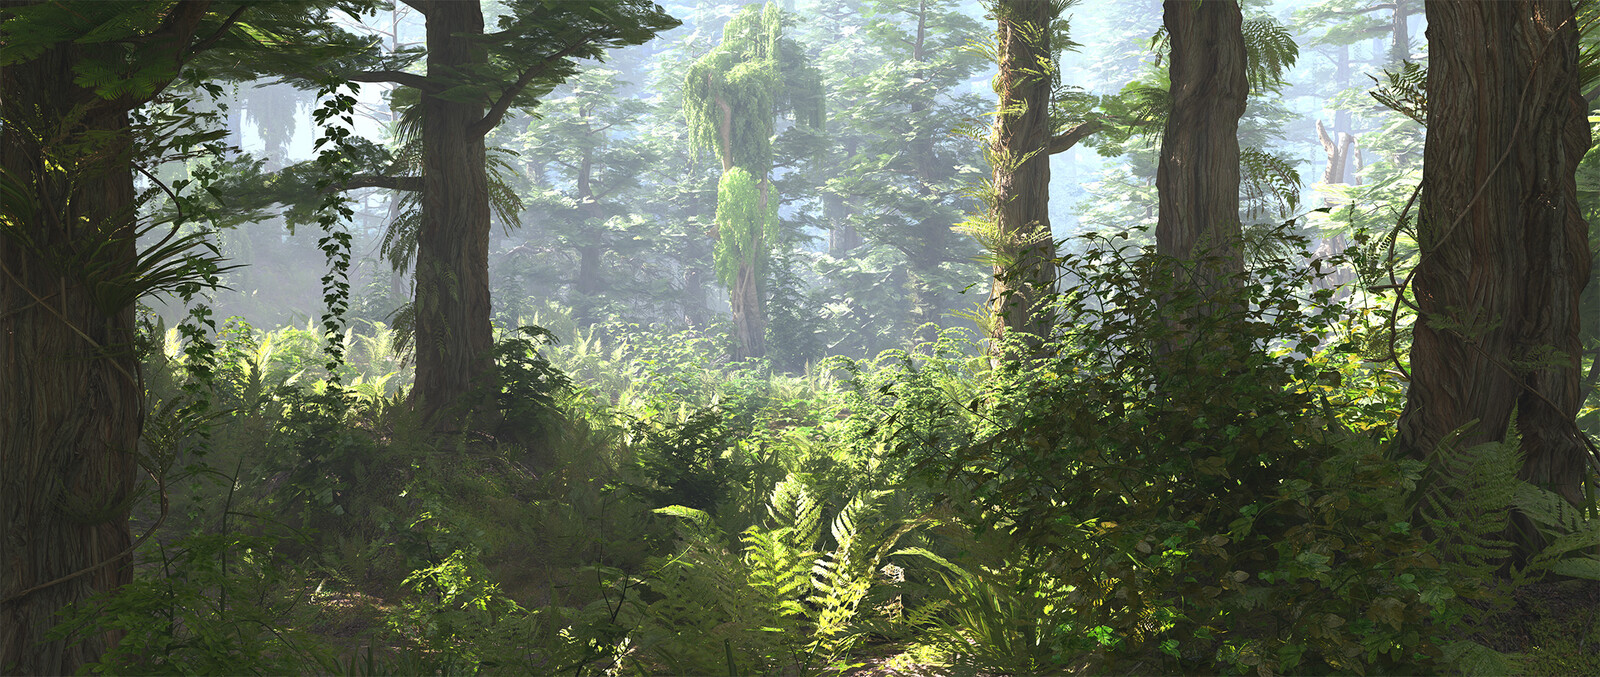 Forest Environment Visualization